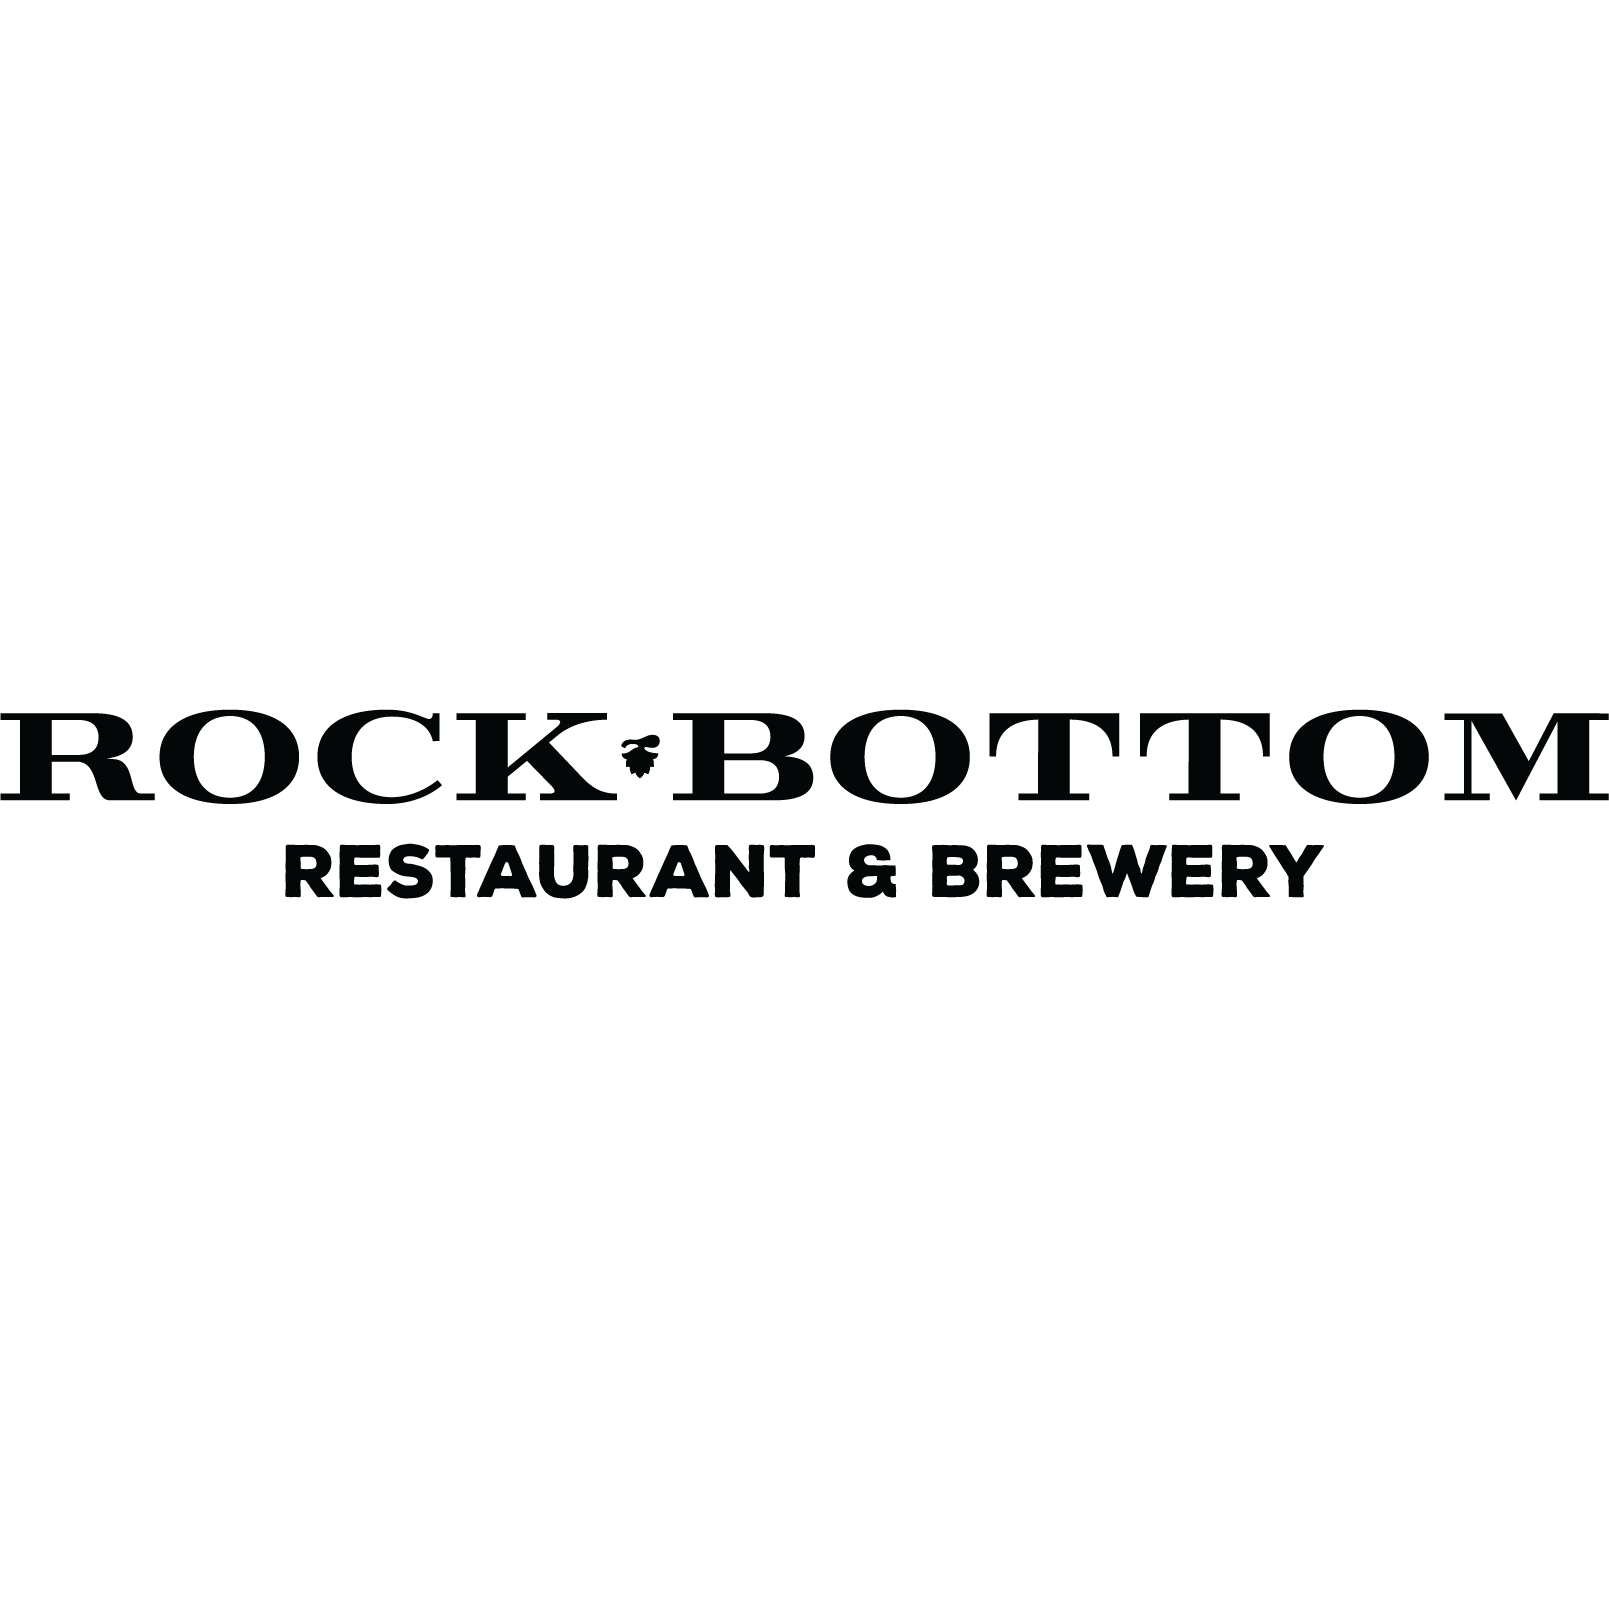 Rock Bottom Restaurant & Brewery image 3